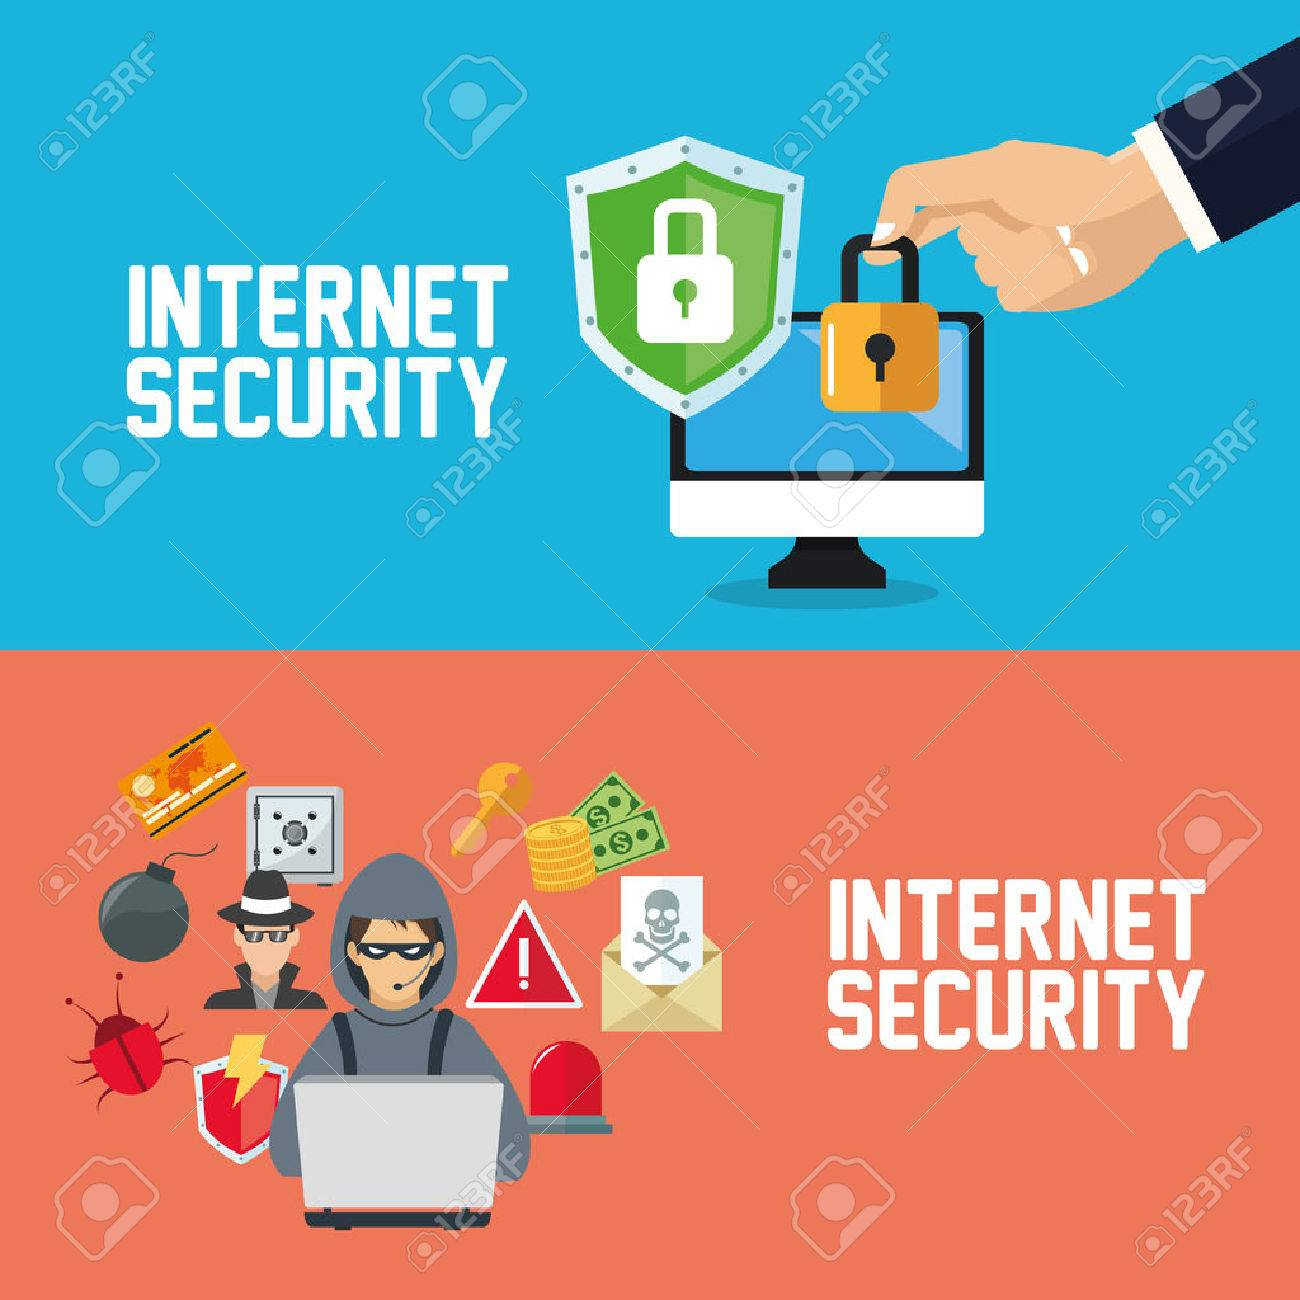 Internet security concept with icon design, vector illustration 10 eps graphic. - 57610334